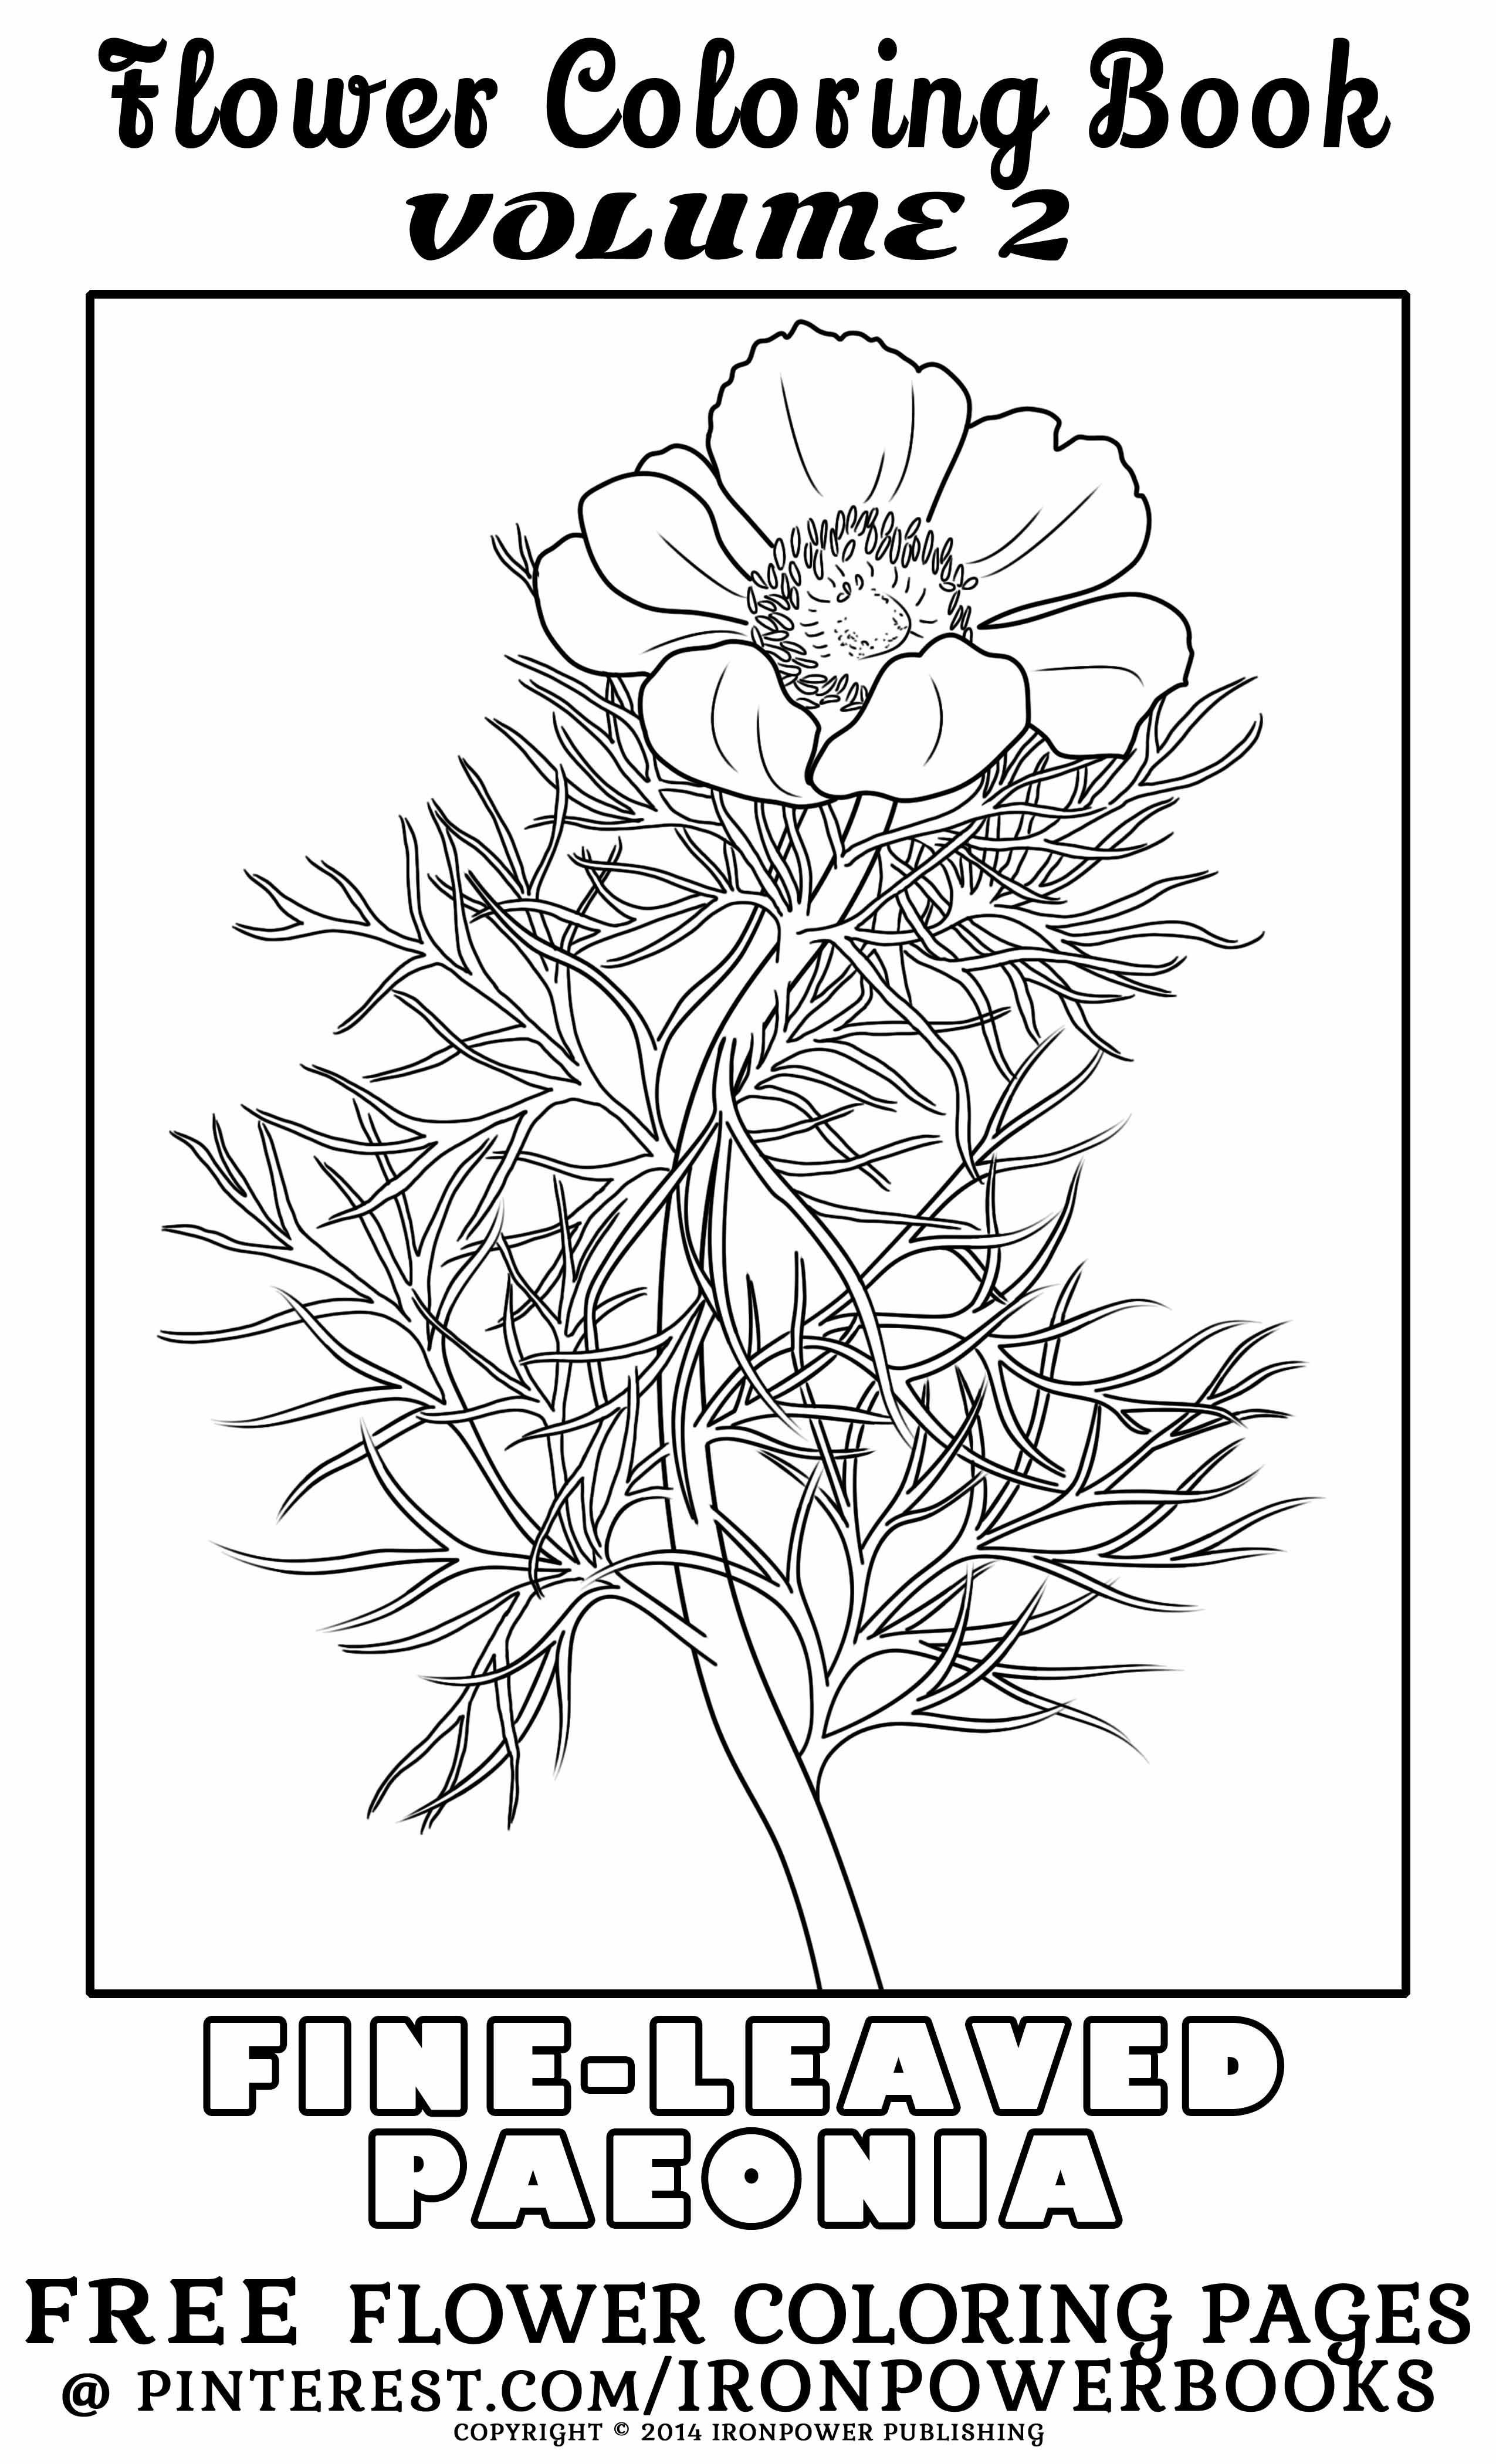 This Beautiful And Intricate Flower Coloring Page For Older Children And Adults Is From The Ironpowerbooks Flower Coloring Pages Coloring Books Coloring Pages